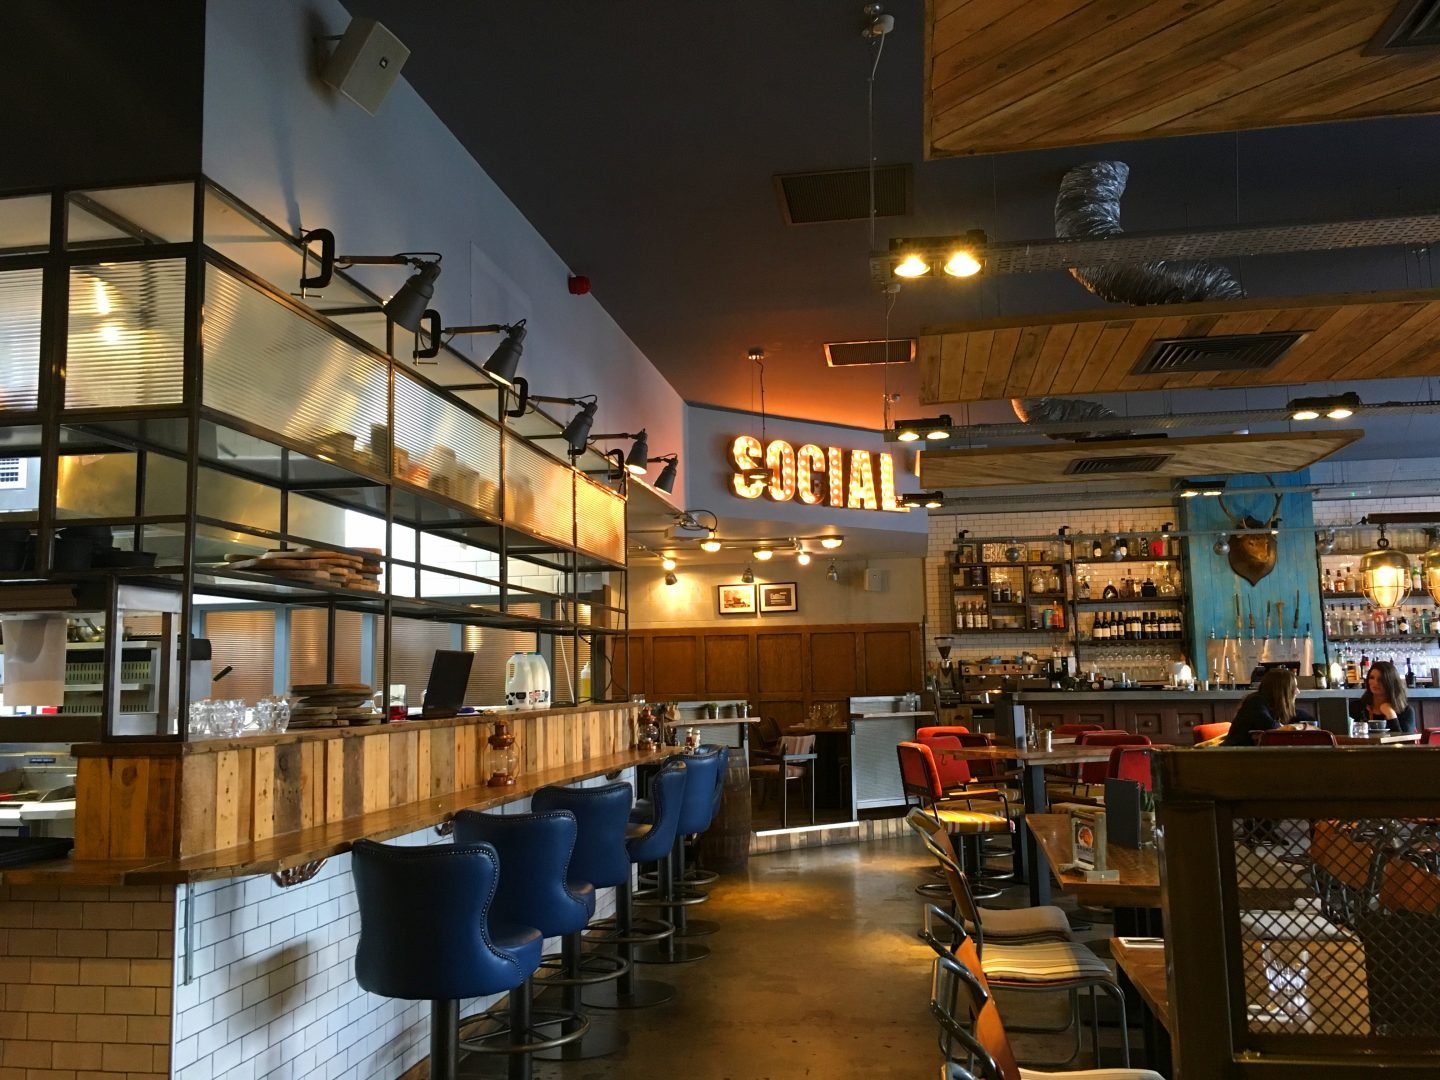 Brunch in Birmingham: Gas Street Social